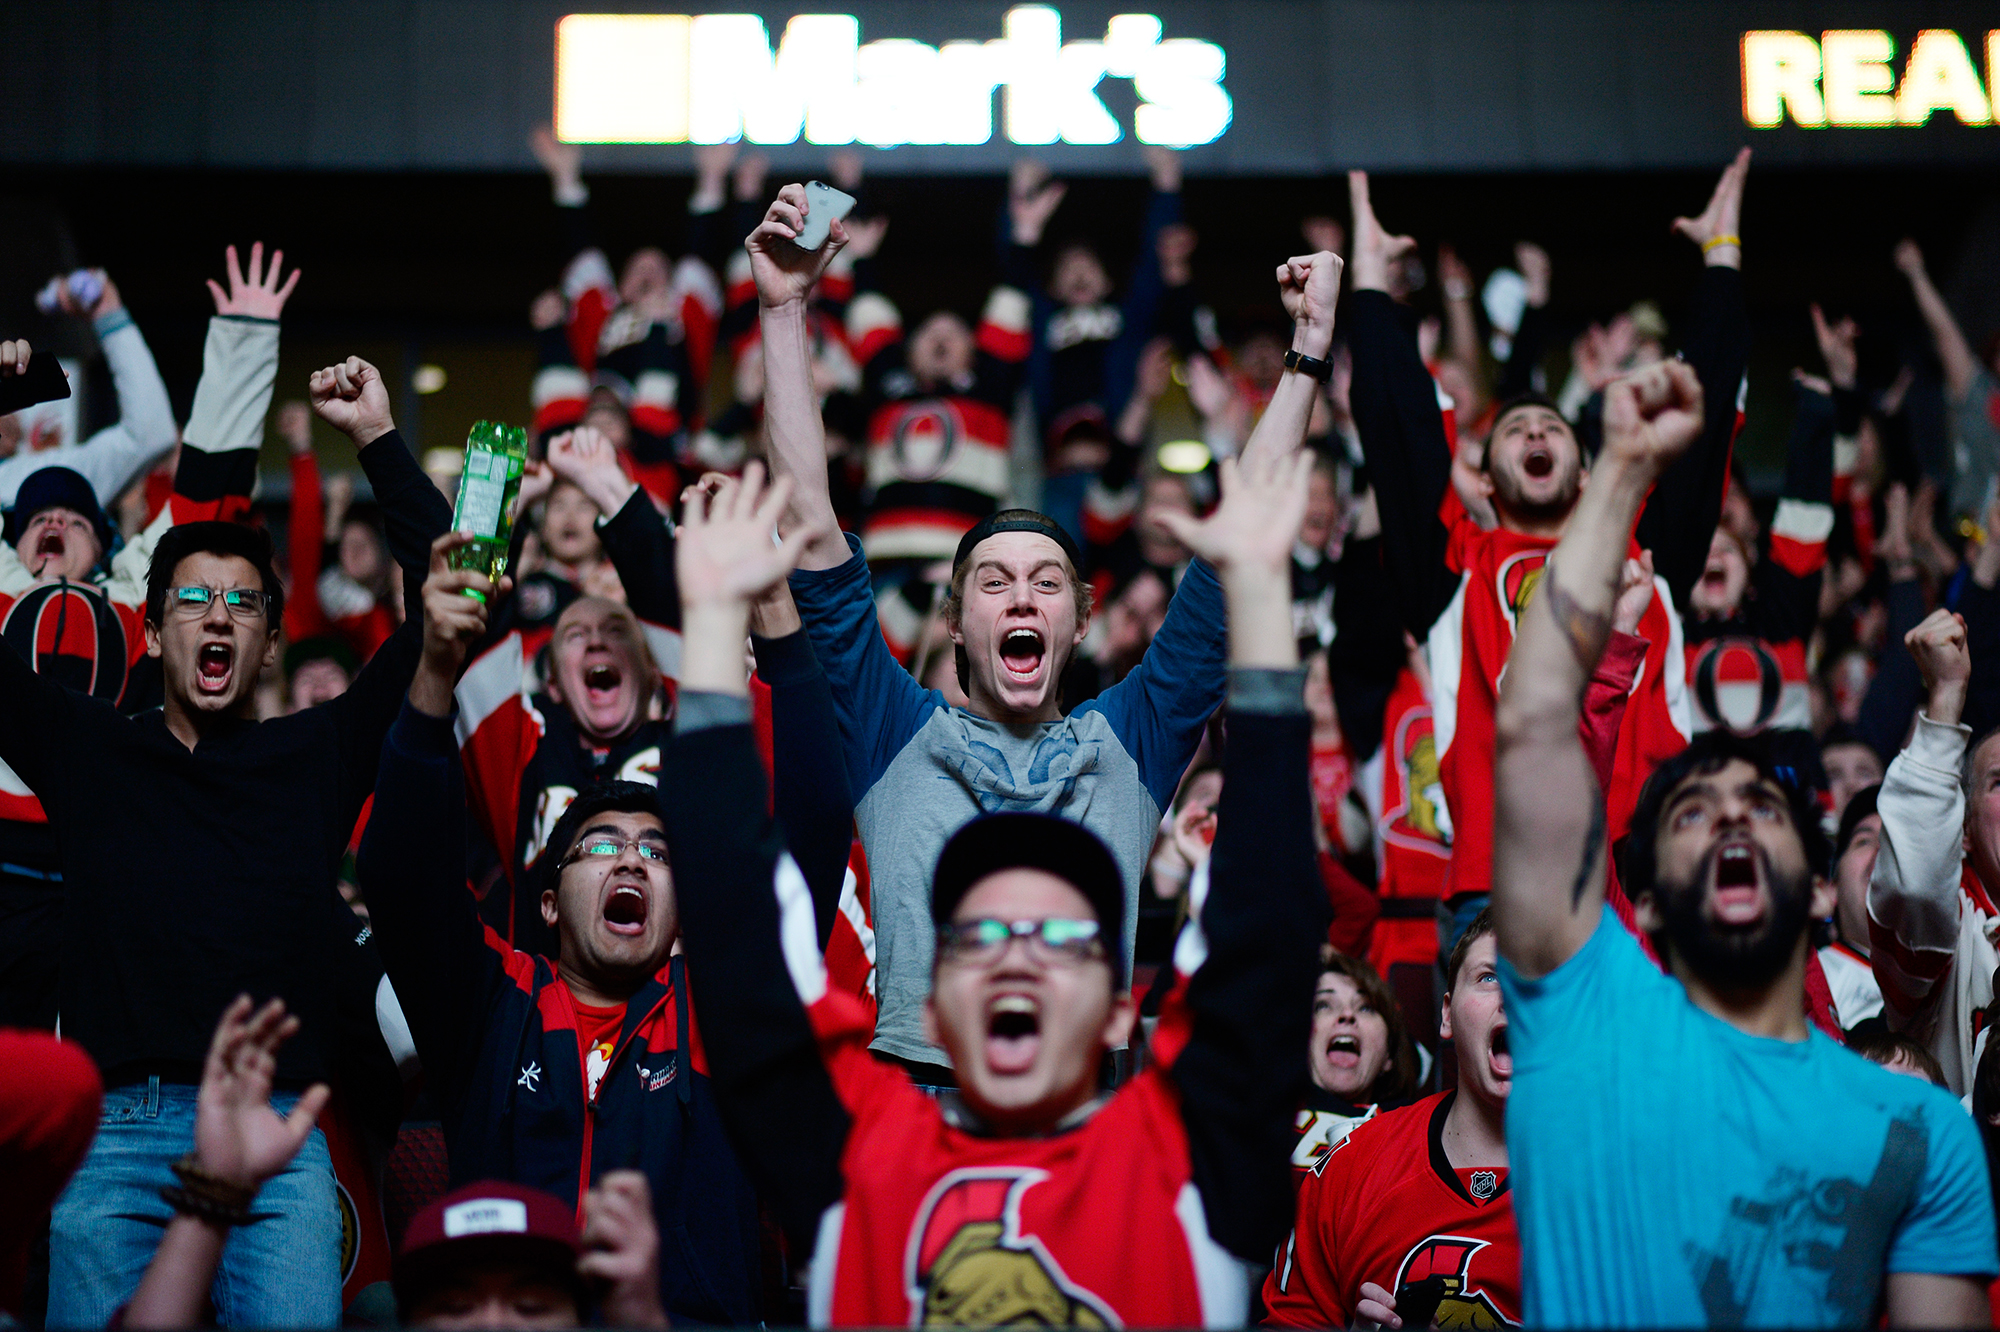 Ottawa Senators fans cheers as the team score the second goal against Philadelphia Flyers and clinch the playoff spot. Fans watched the game on the big screen at Canadian Tire Centre on Saturday, April 11, 2015.